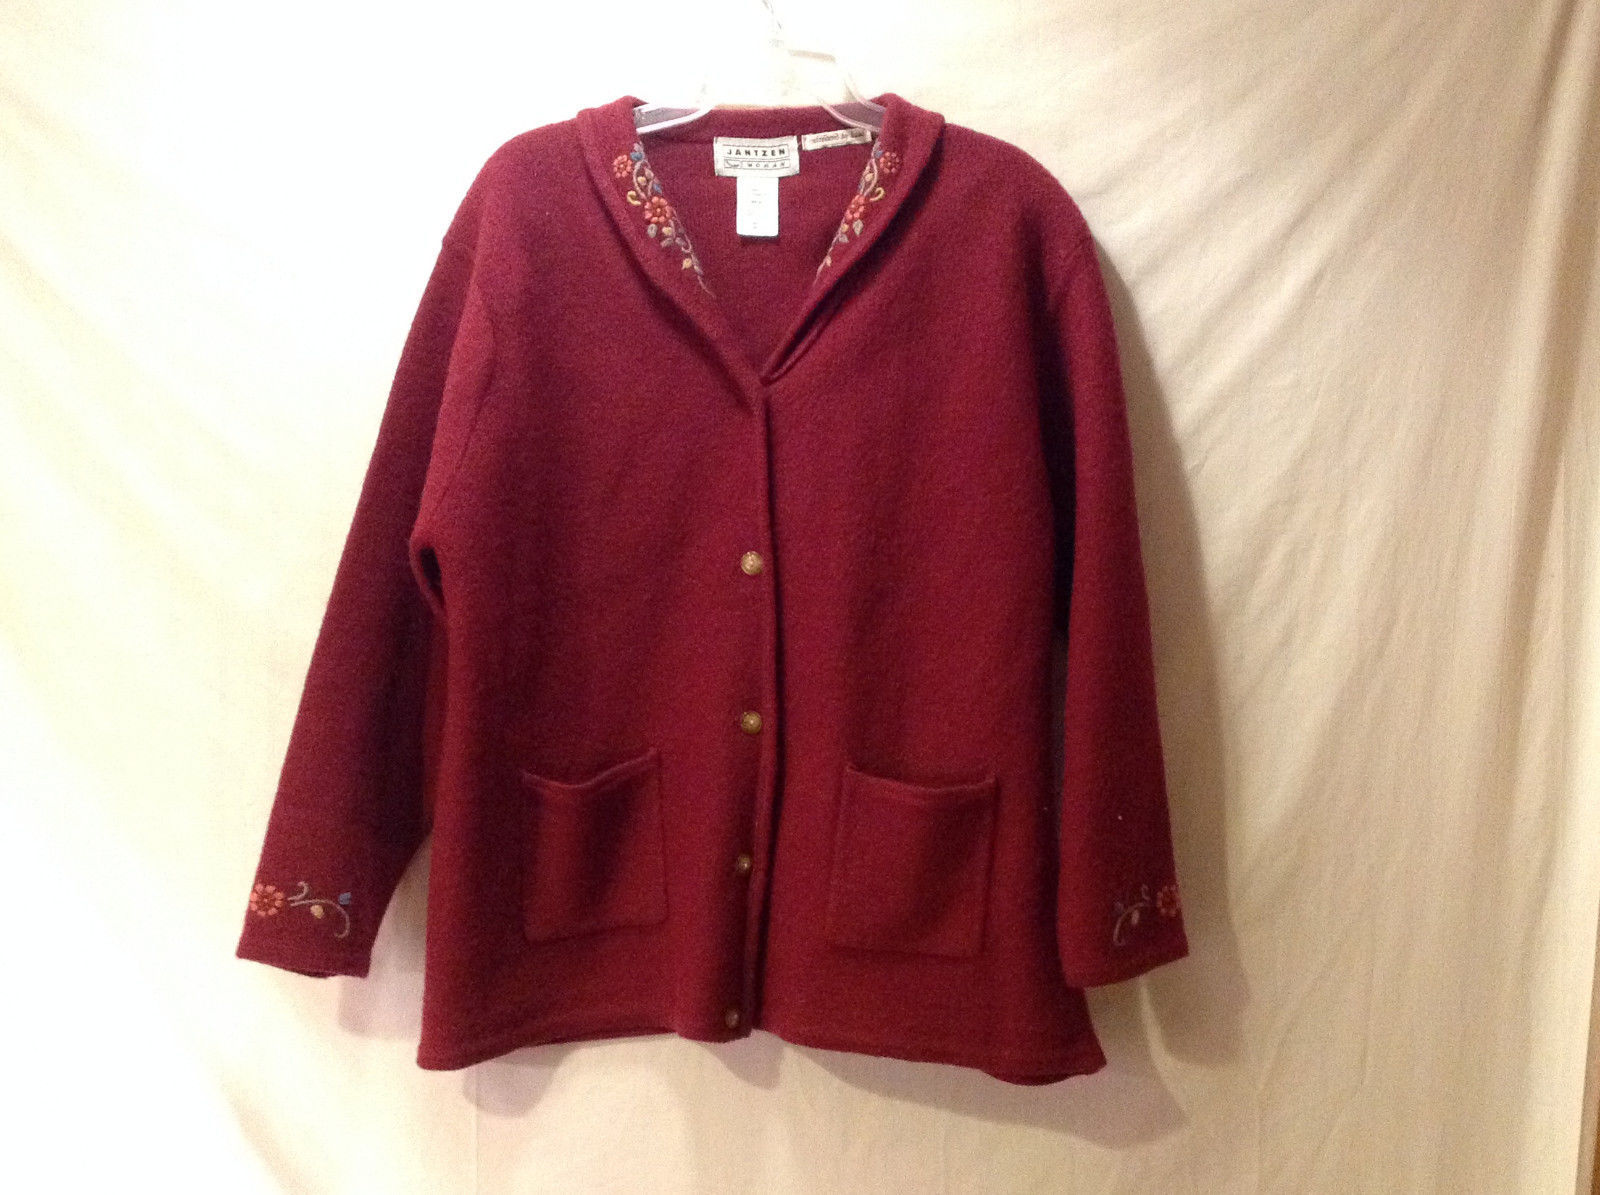 Jantzen Woman Women's Size 1X Cardigan Sweater Burgundy Red Floral Embroidery